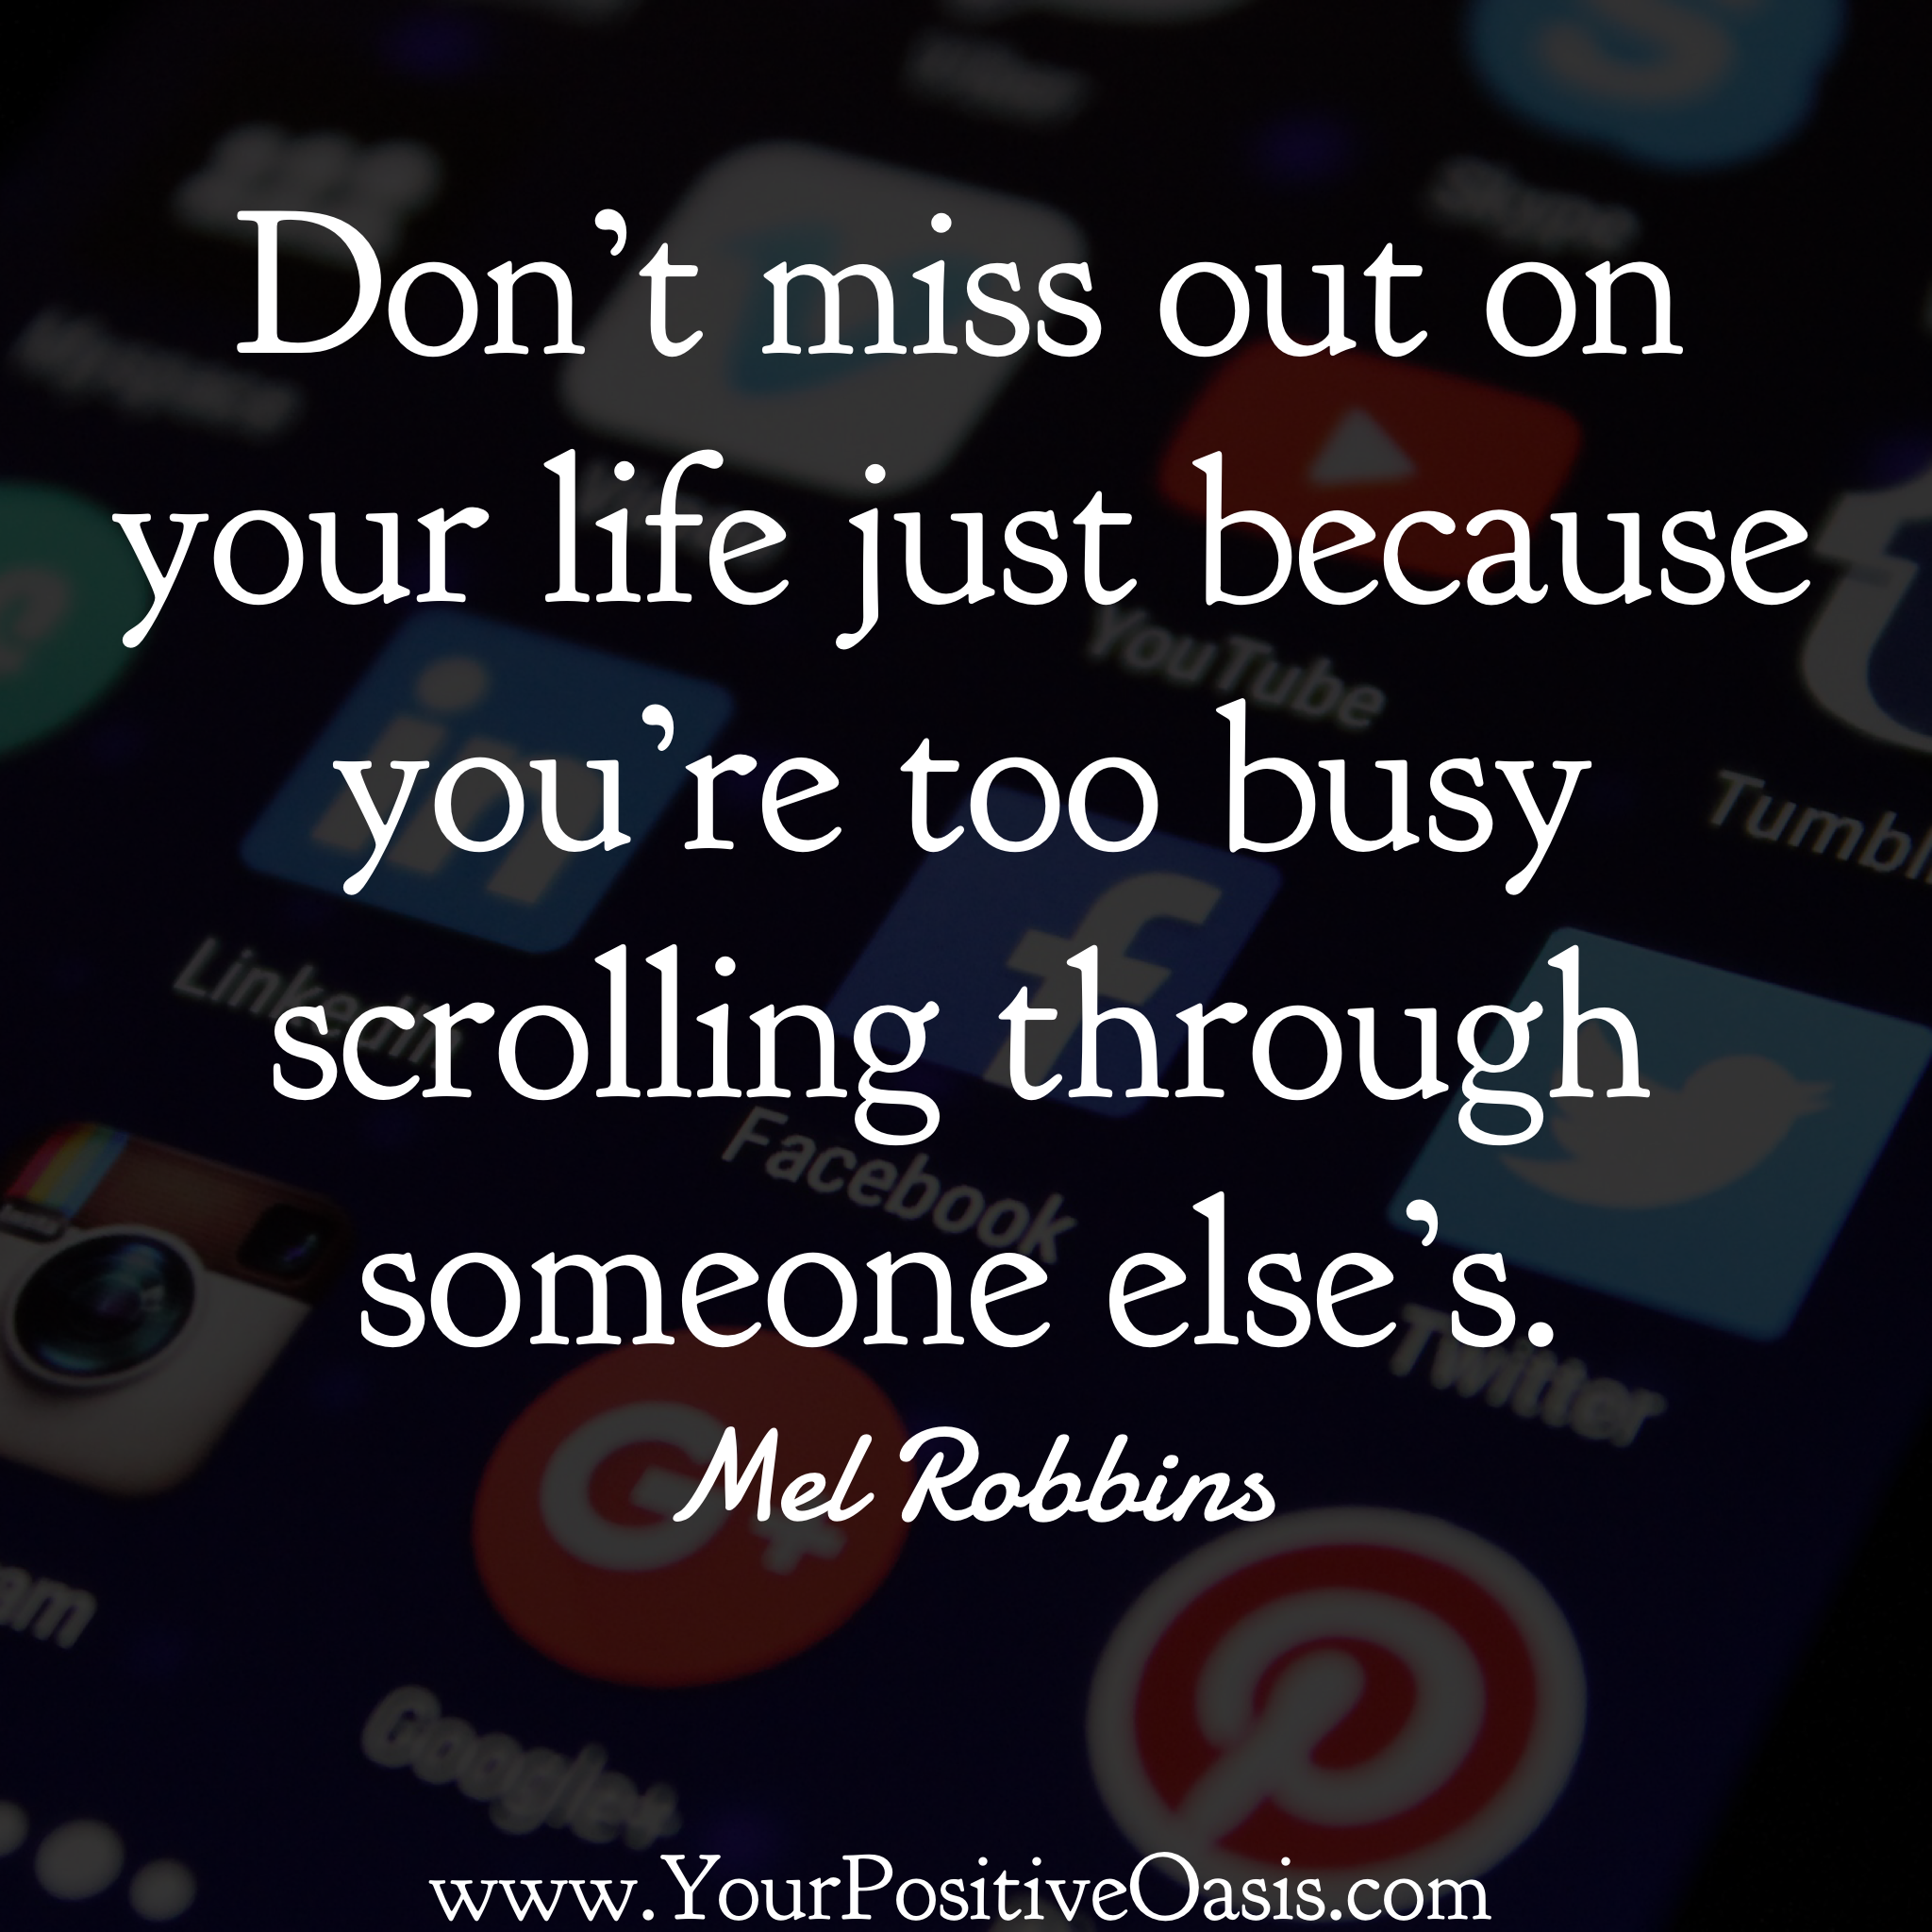 Live Your Own Life Quotes: 30 Mel Robbins Quotes That Will Inspire You To Take Action